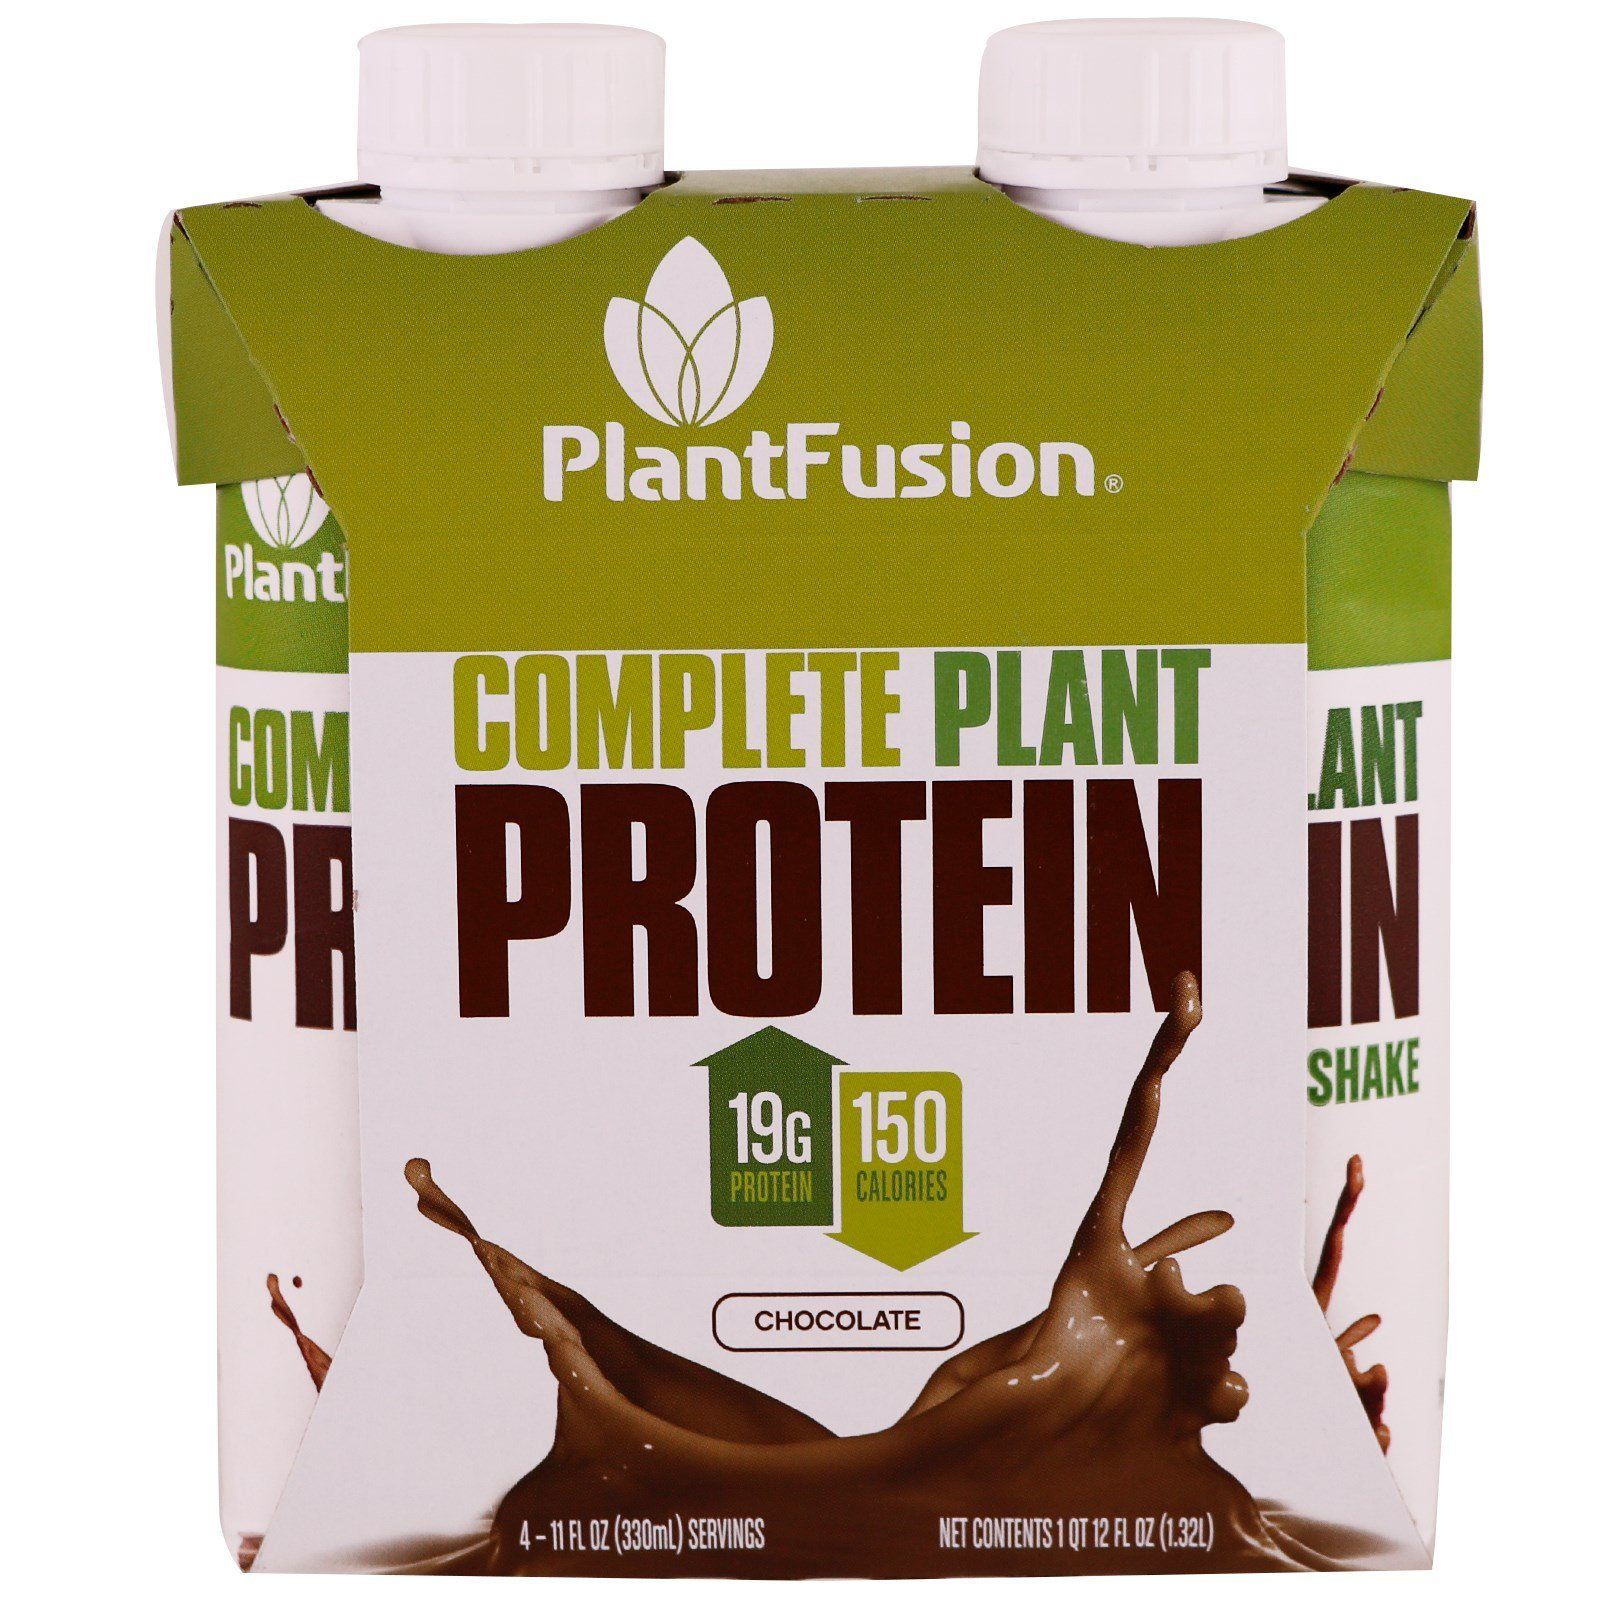 PlantFusion, Complete Plant Protein, Chocolate, 4 Pack, 11 fl oz  (330 ml)  Each (Discontinued Item)